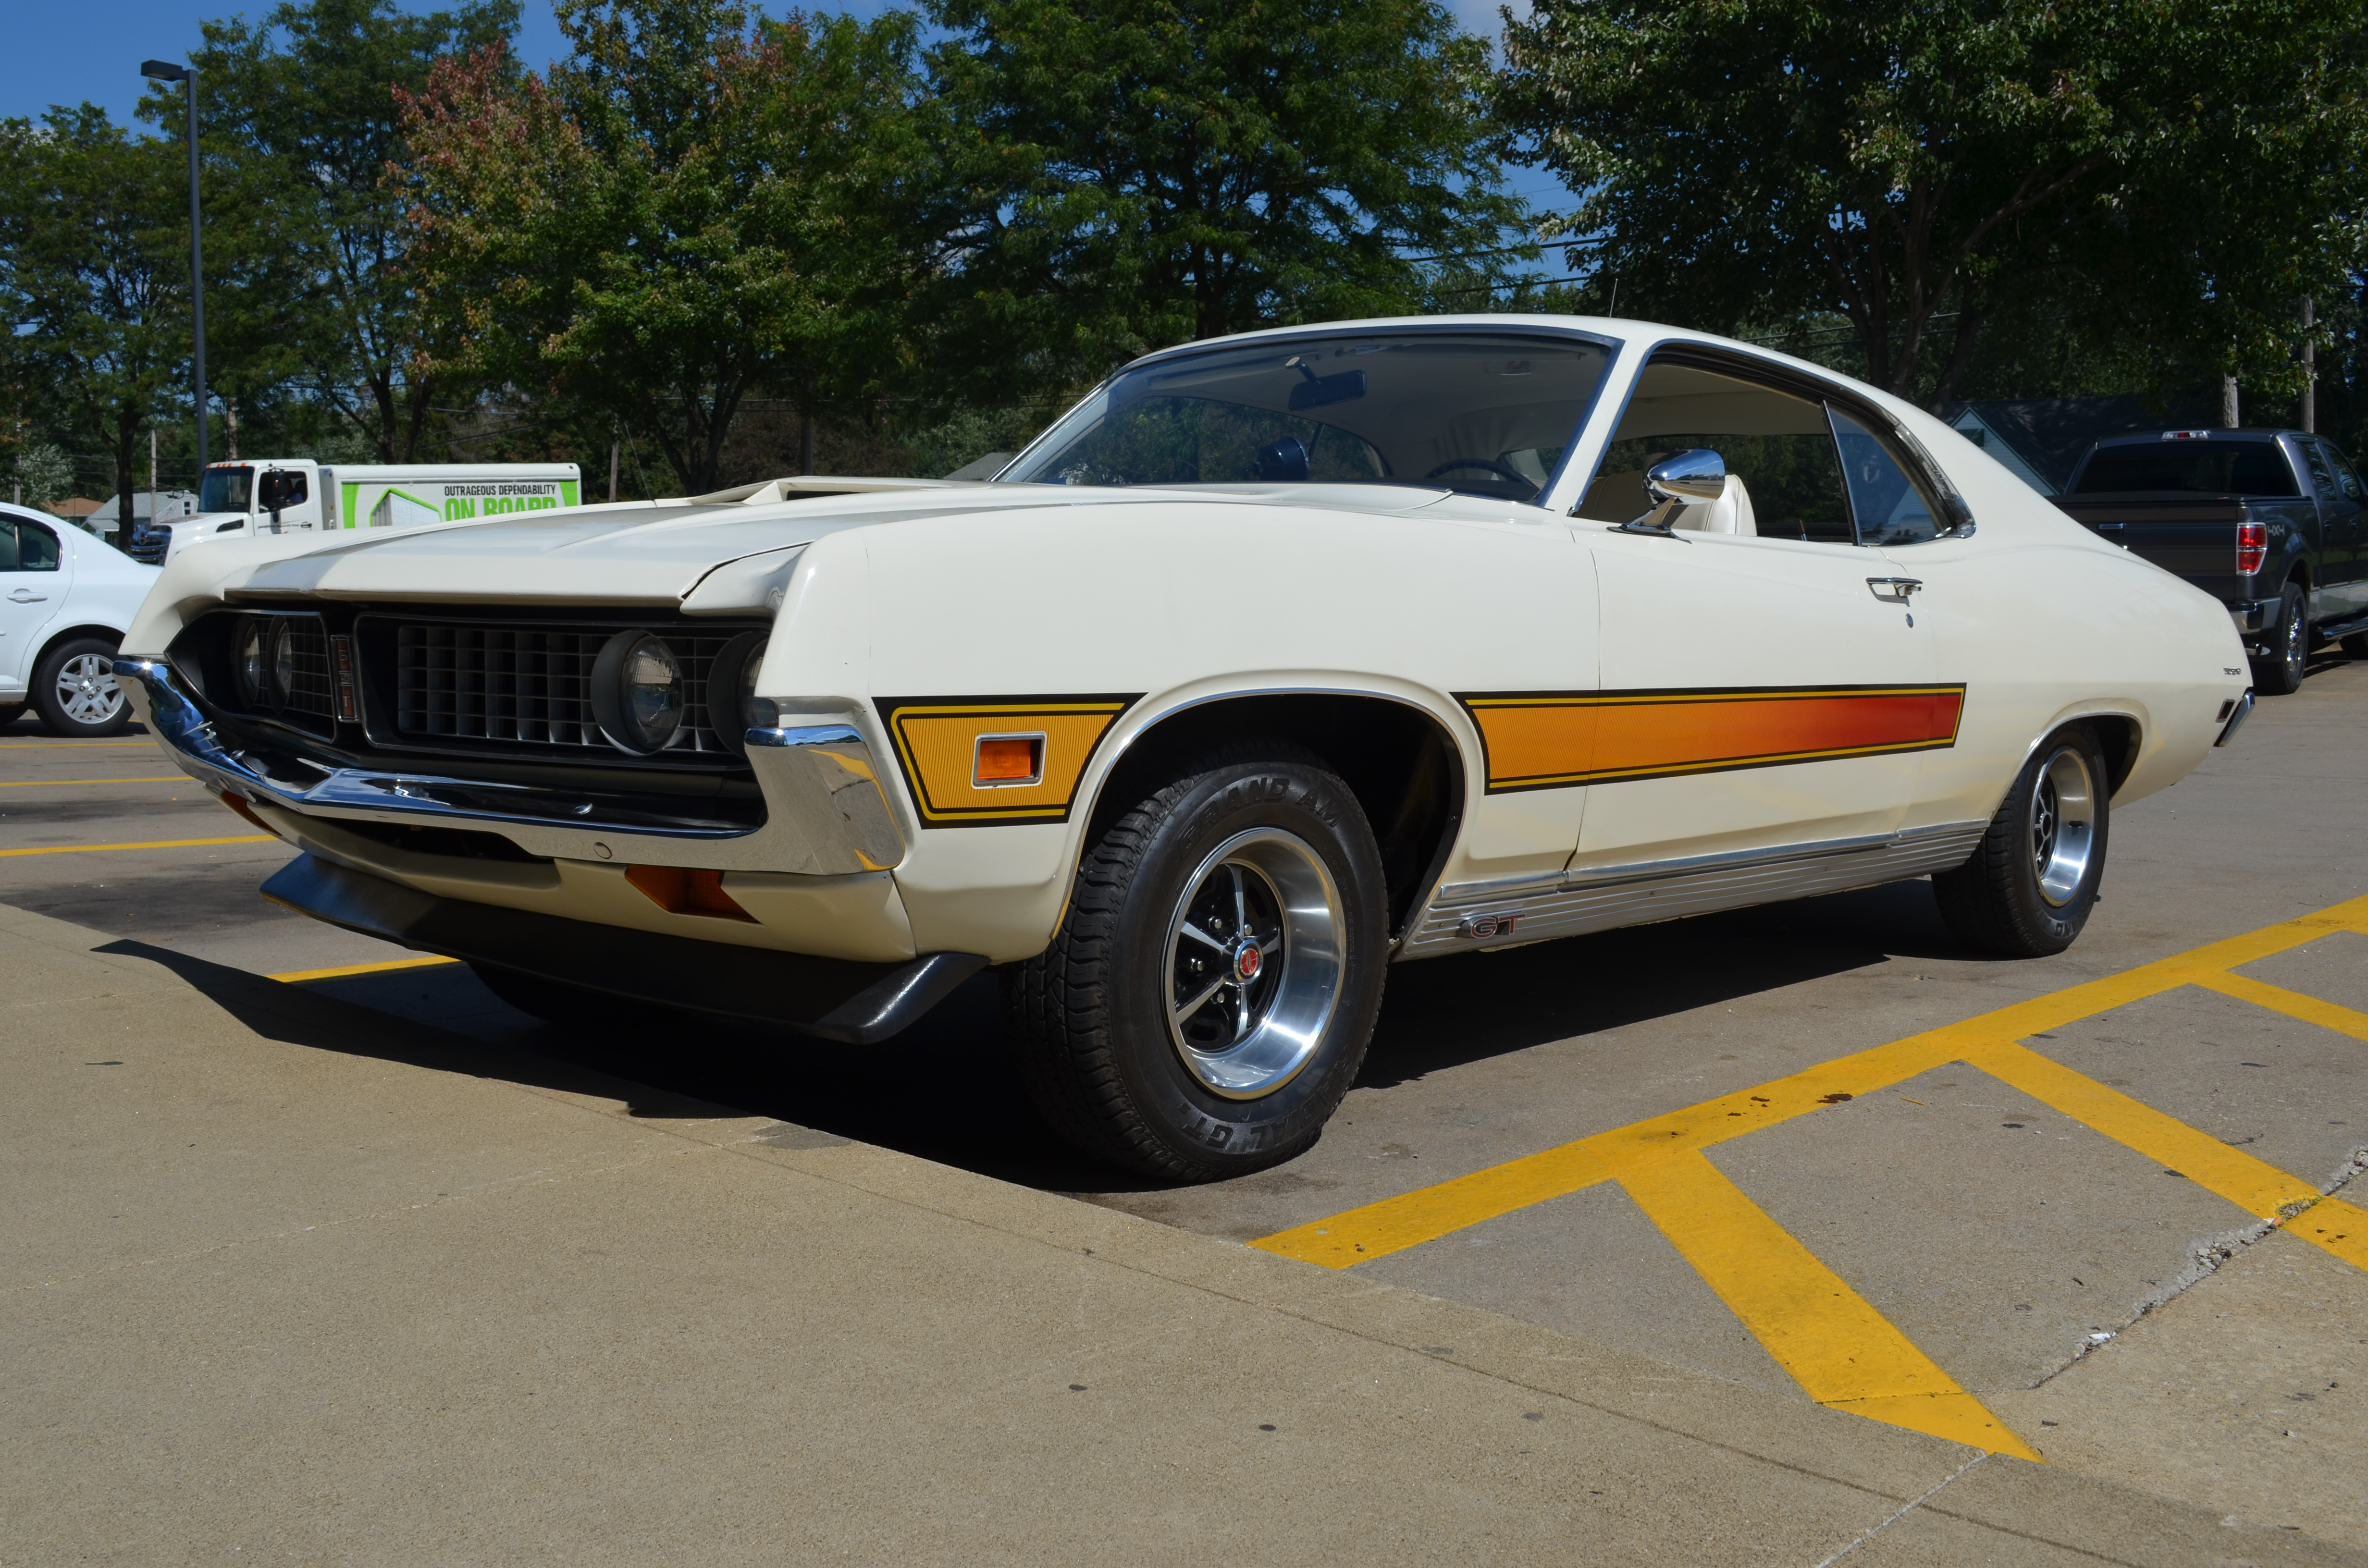 Ford Racing Parts >> Lot Shots Find of the Week: 1971 Ford Torino GT ...